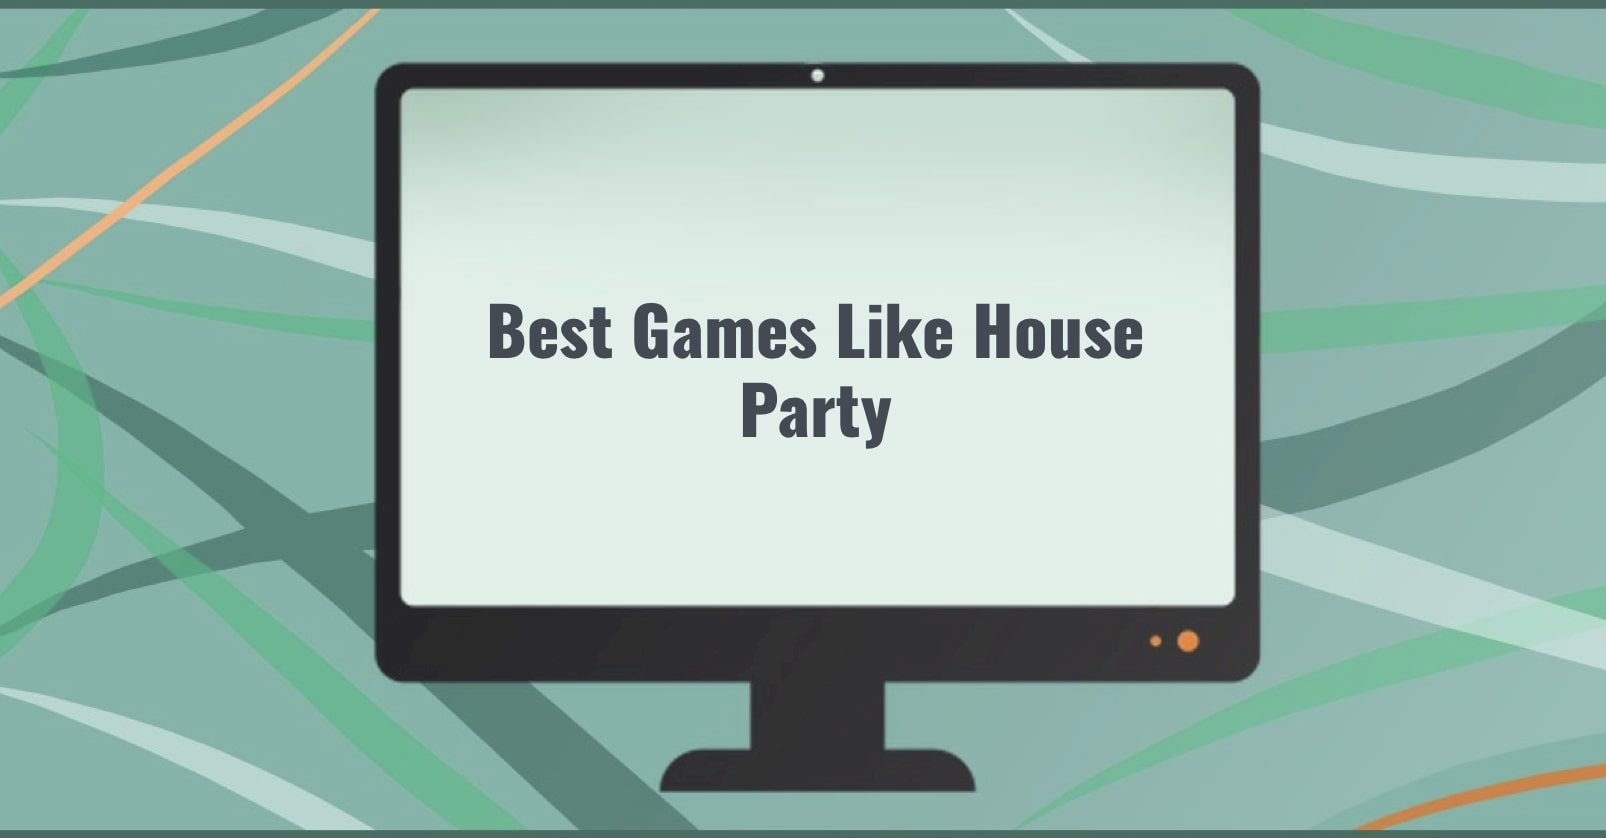 Best Games Like House Party